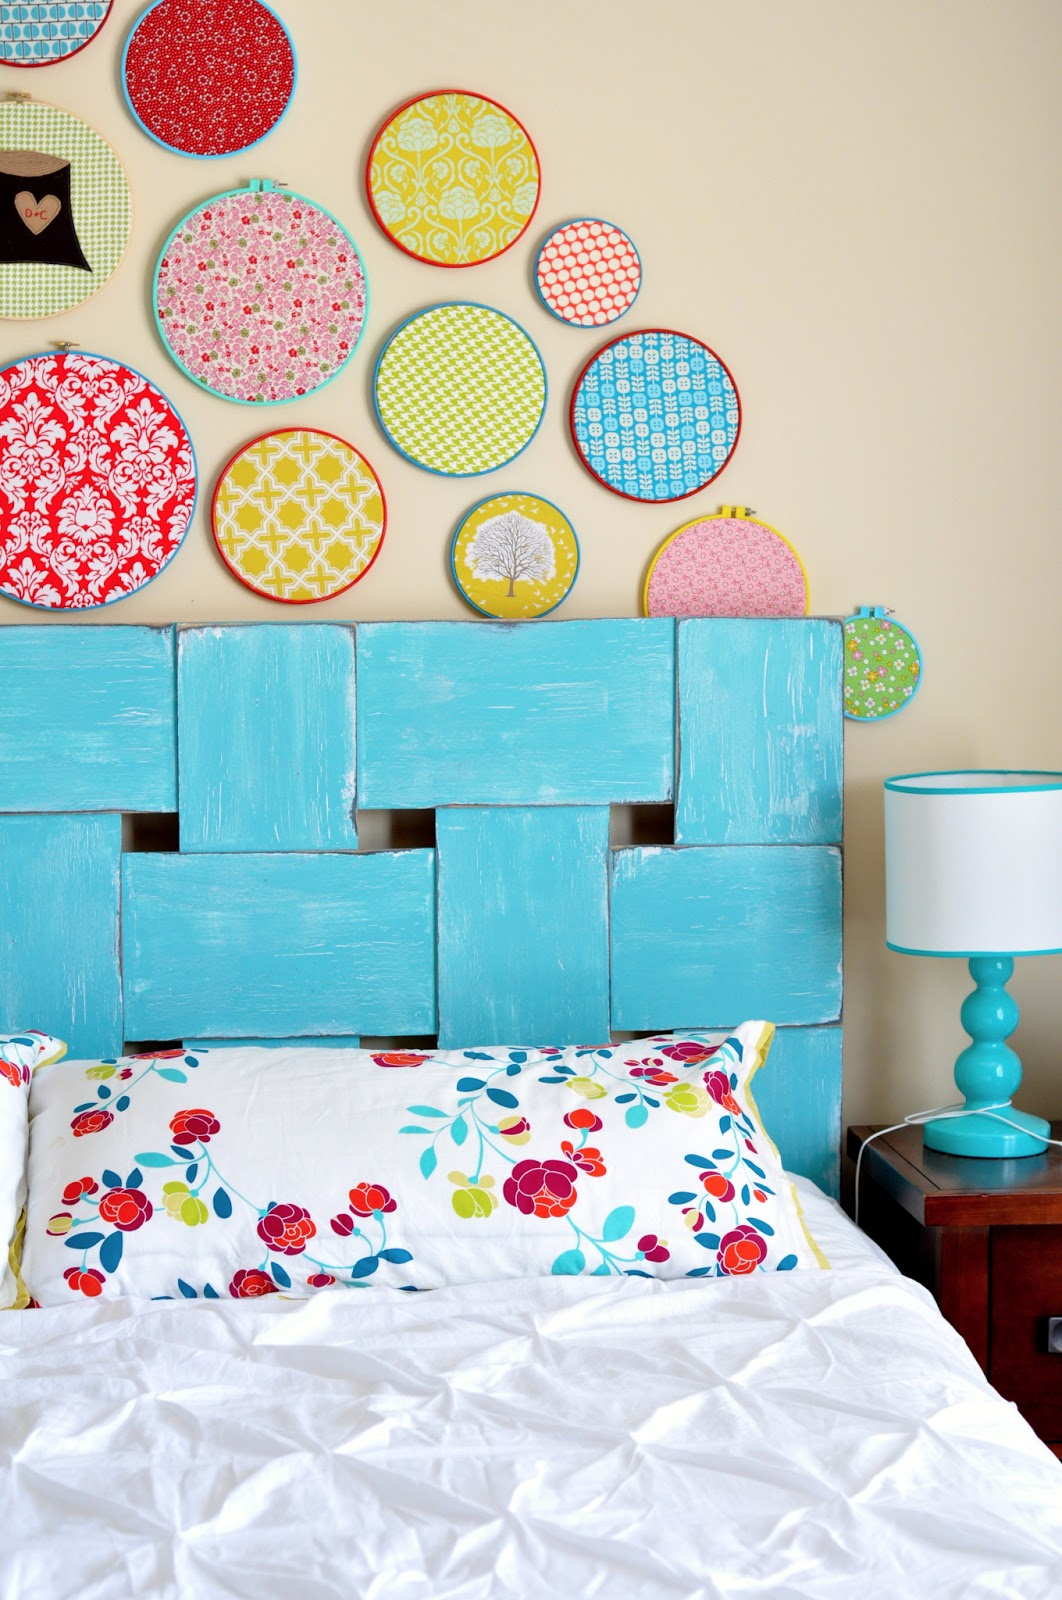 The Intricate Headboards We Weave